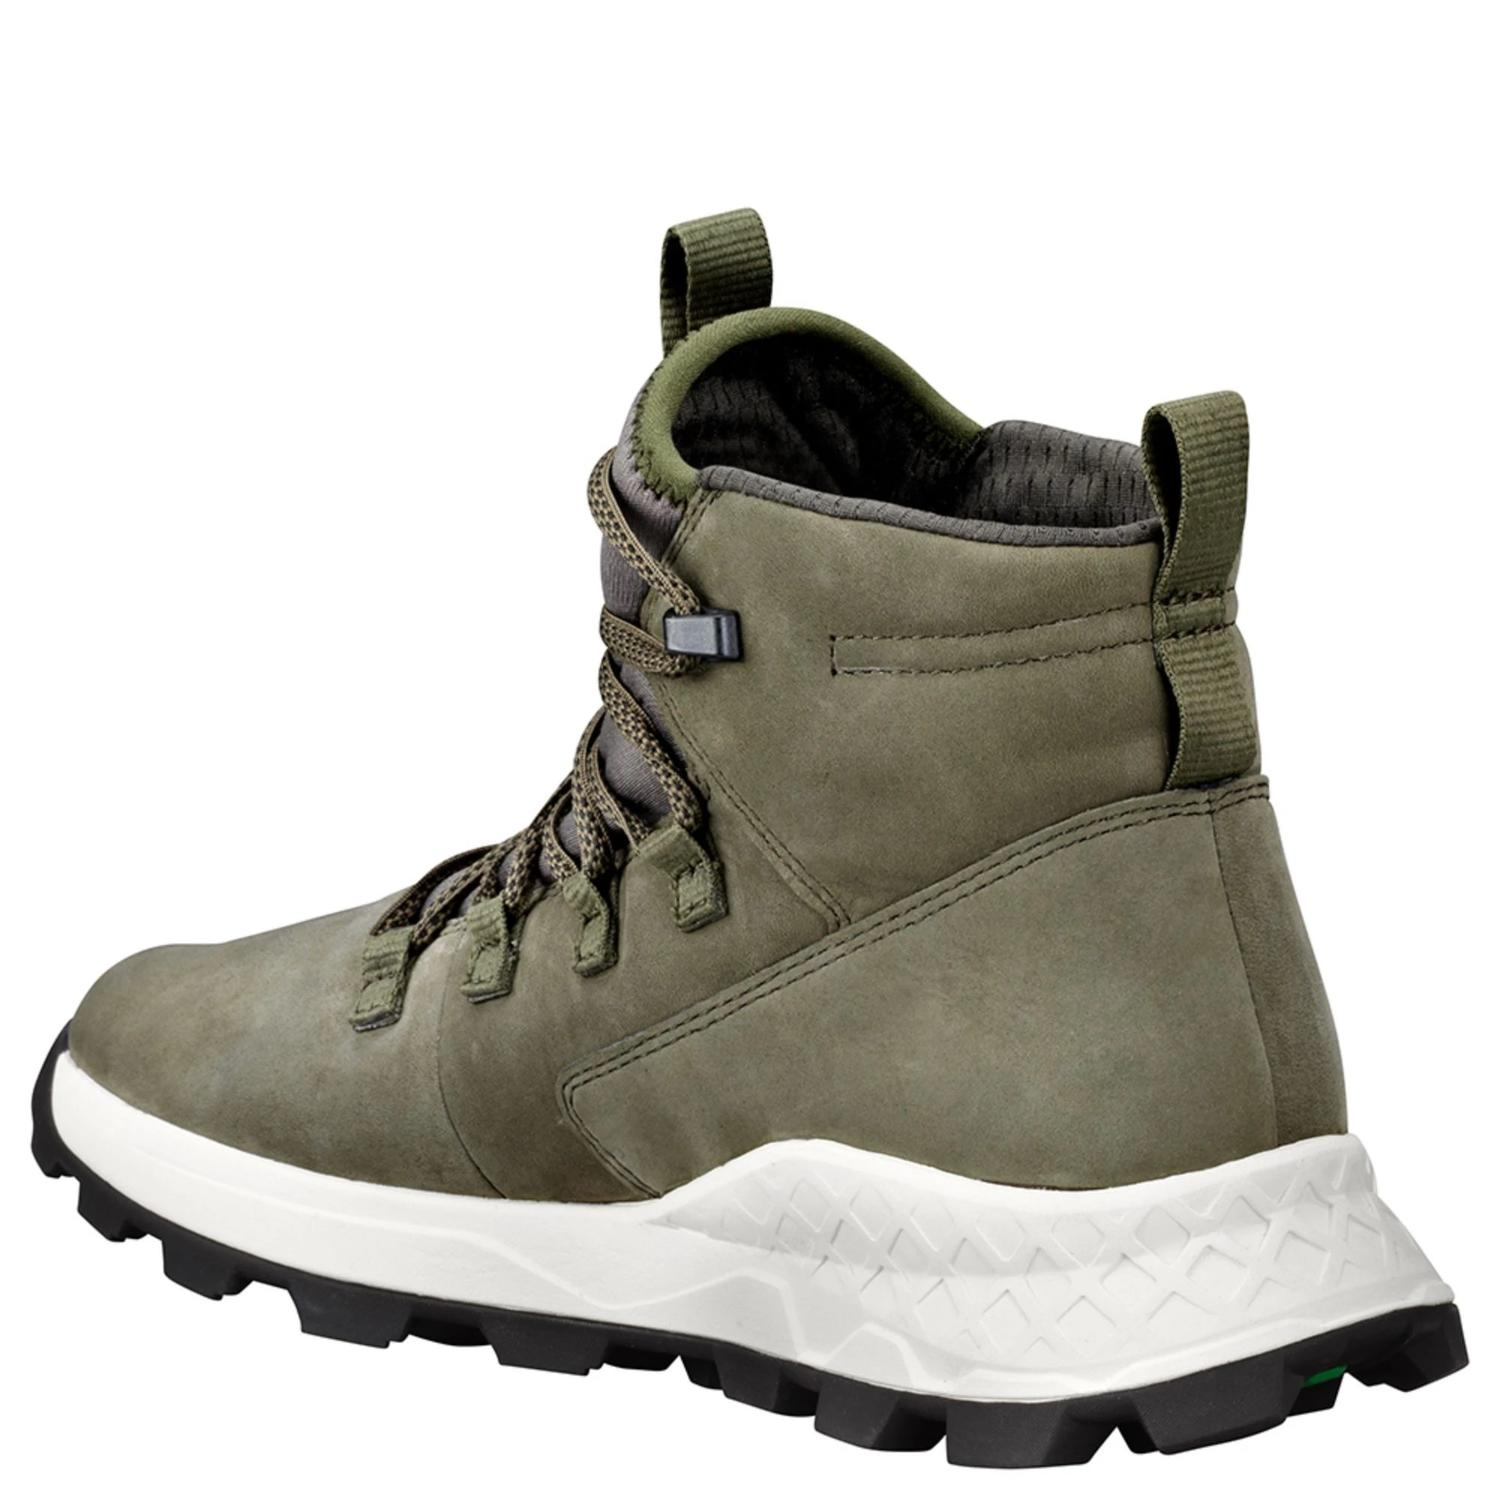 Men's shoes -  BROOKLYN ALPINE Men's sneaker